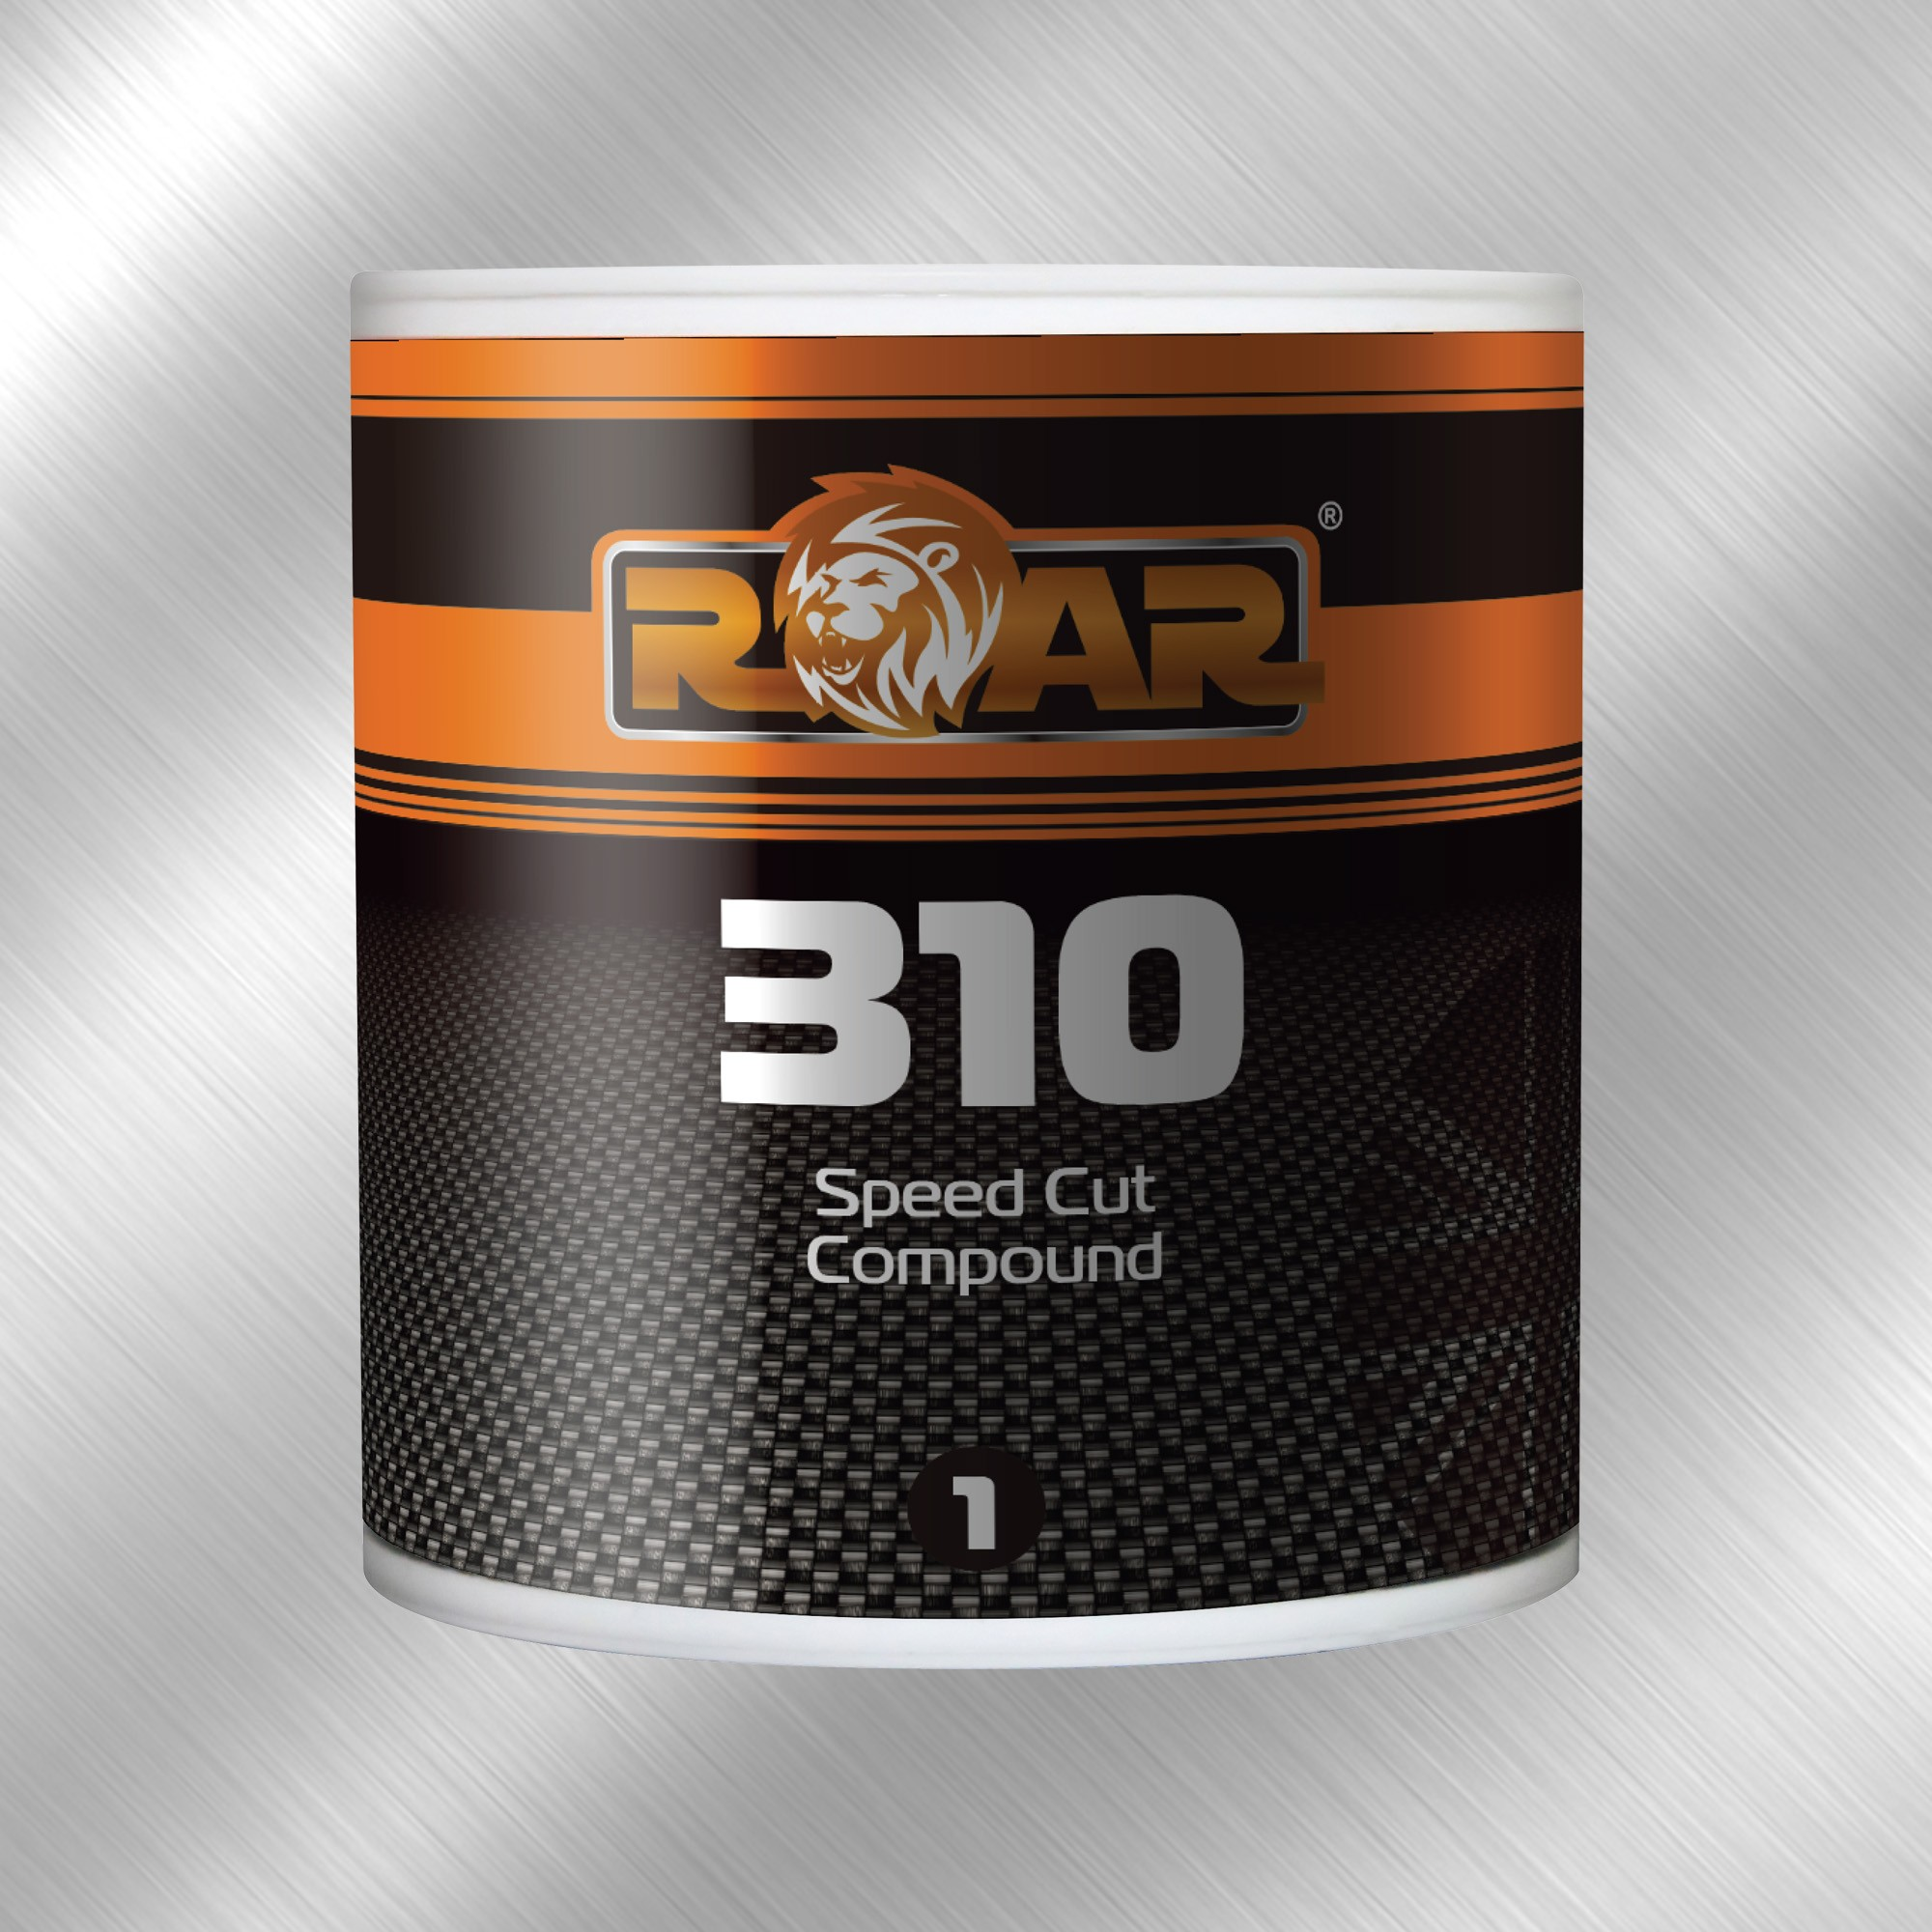 ROAR 310 Speed Cut Compound